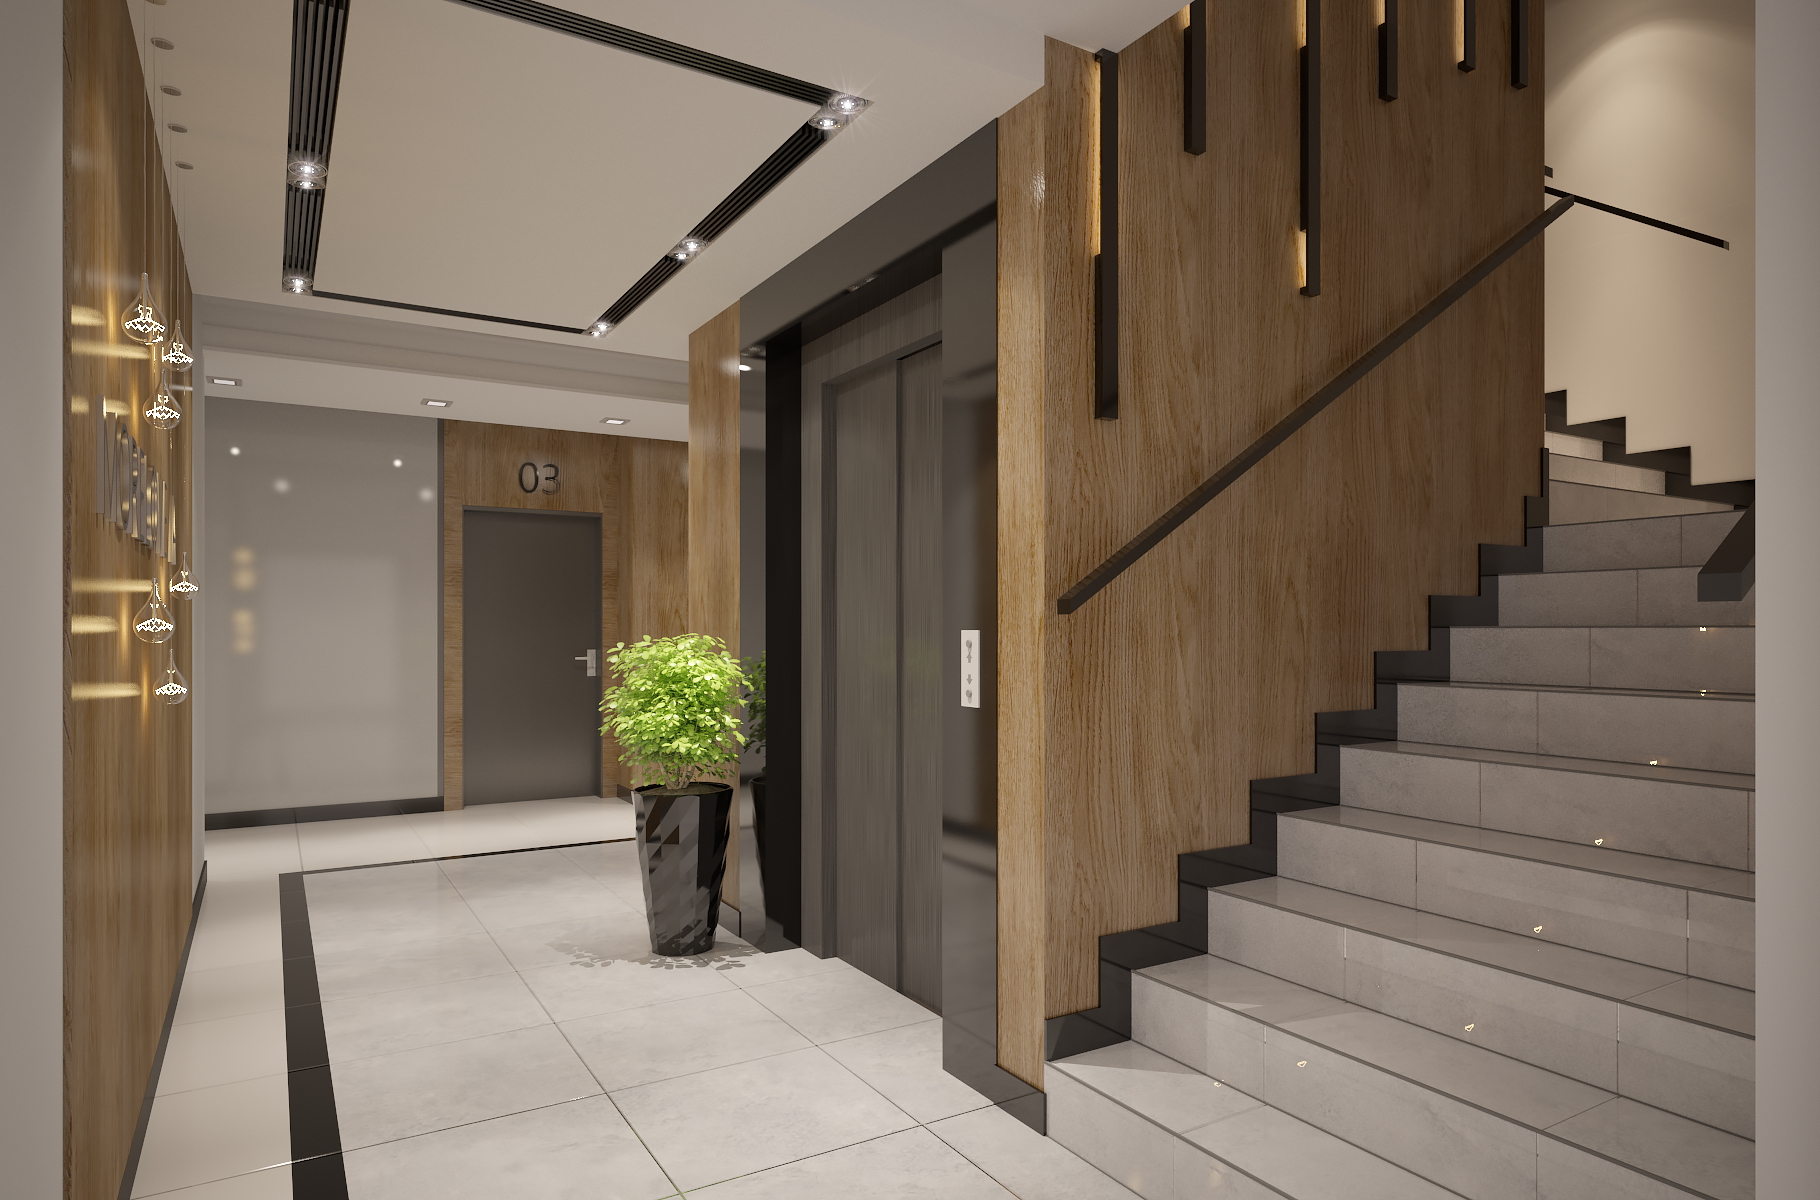 Apartments building entrance hall area foyer lobby with for Entrance foyer design